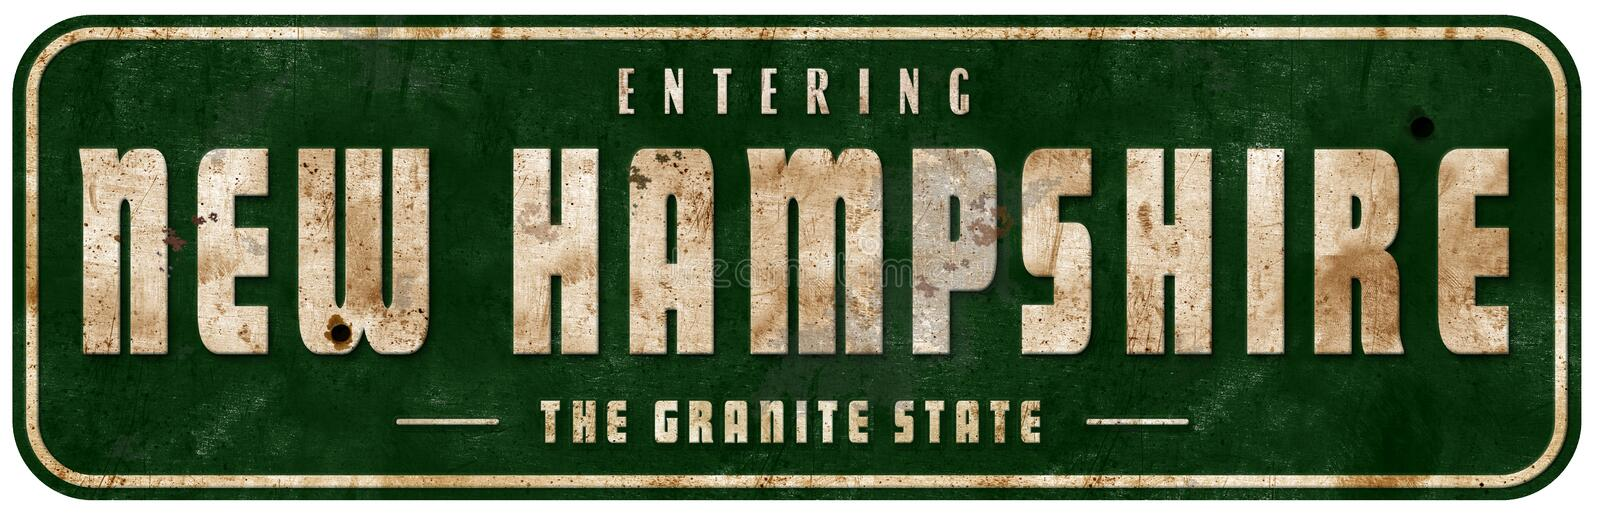 New Hampshire Road Sign welcome to entering. New Hampshire Road Sign grunge vintage metal welcome to entering freeway retro the freedom and unity state roadway royalty free stock image